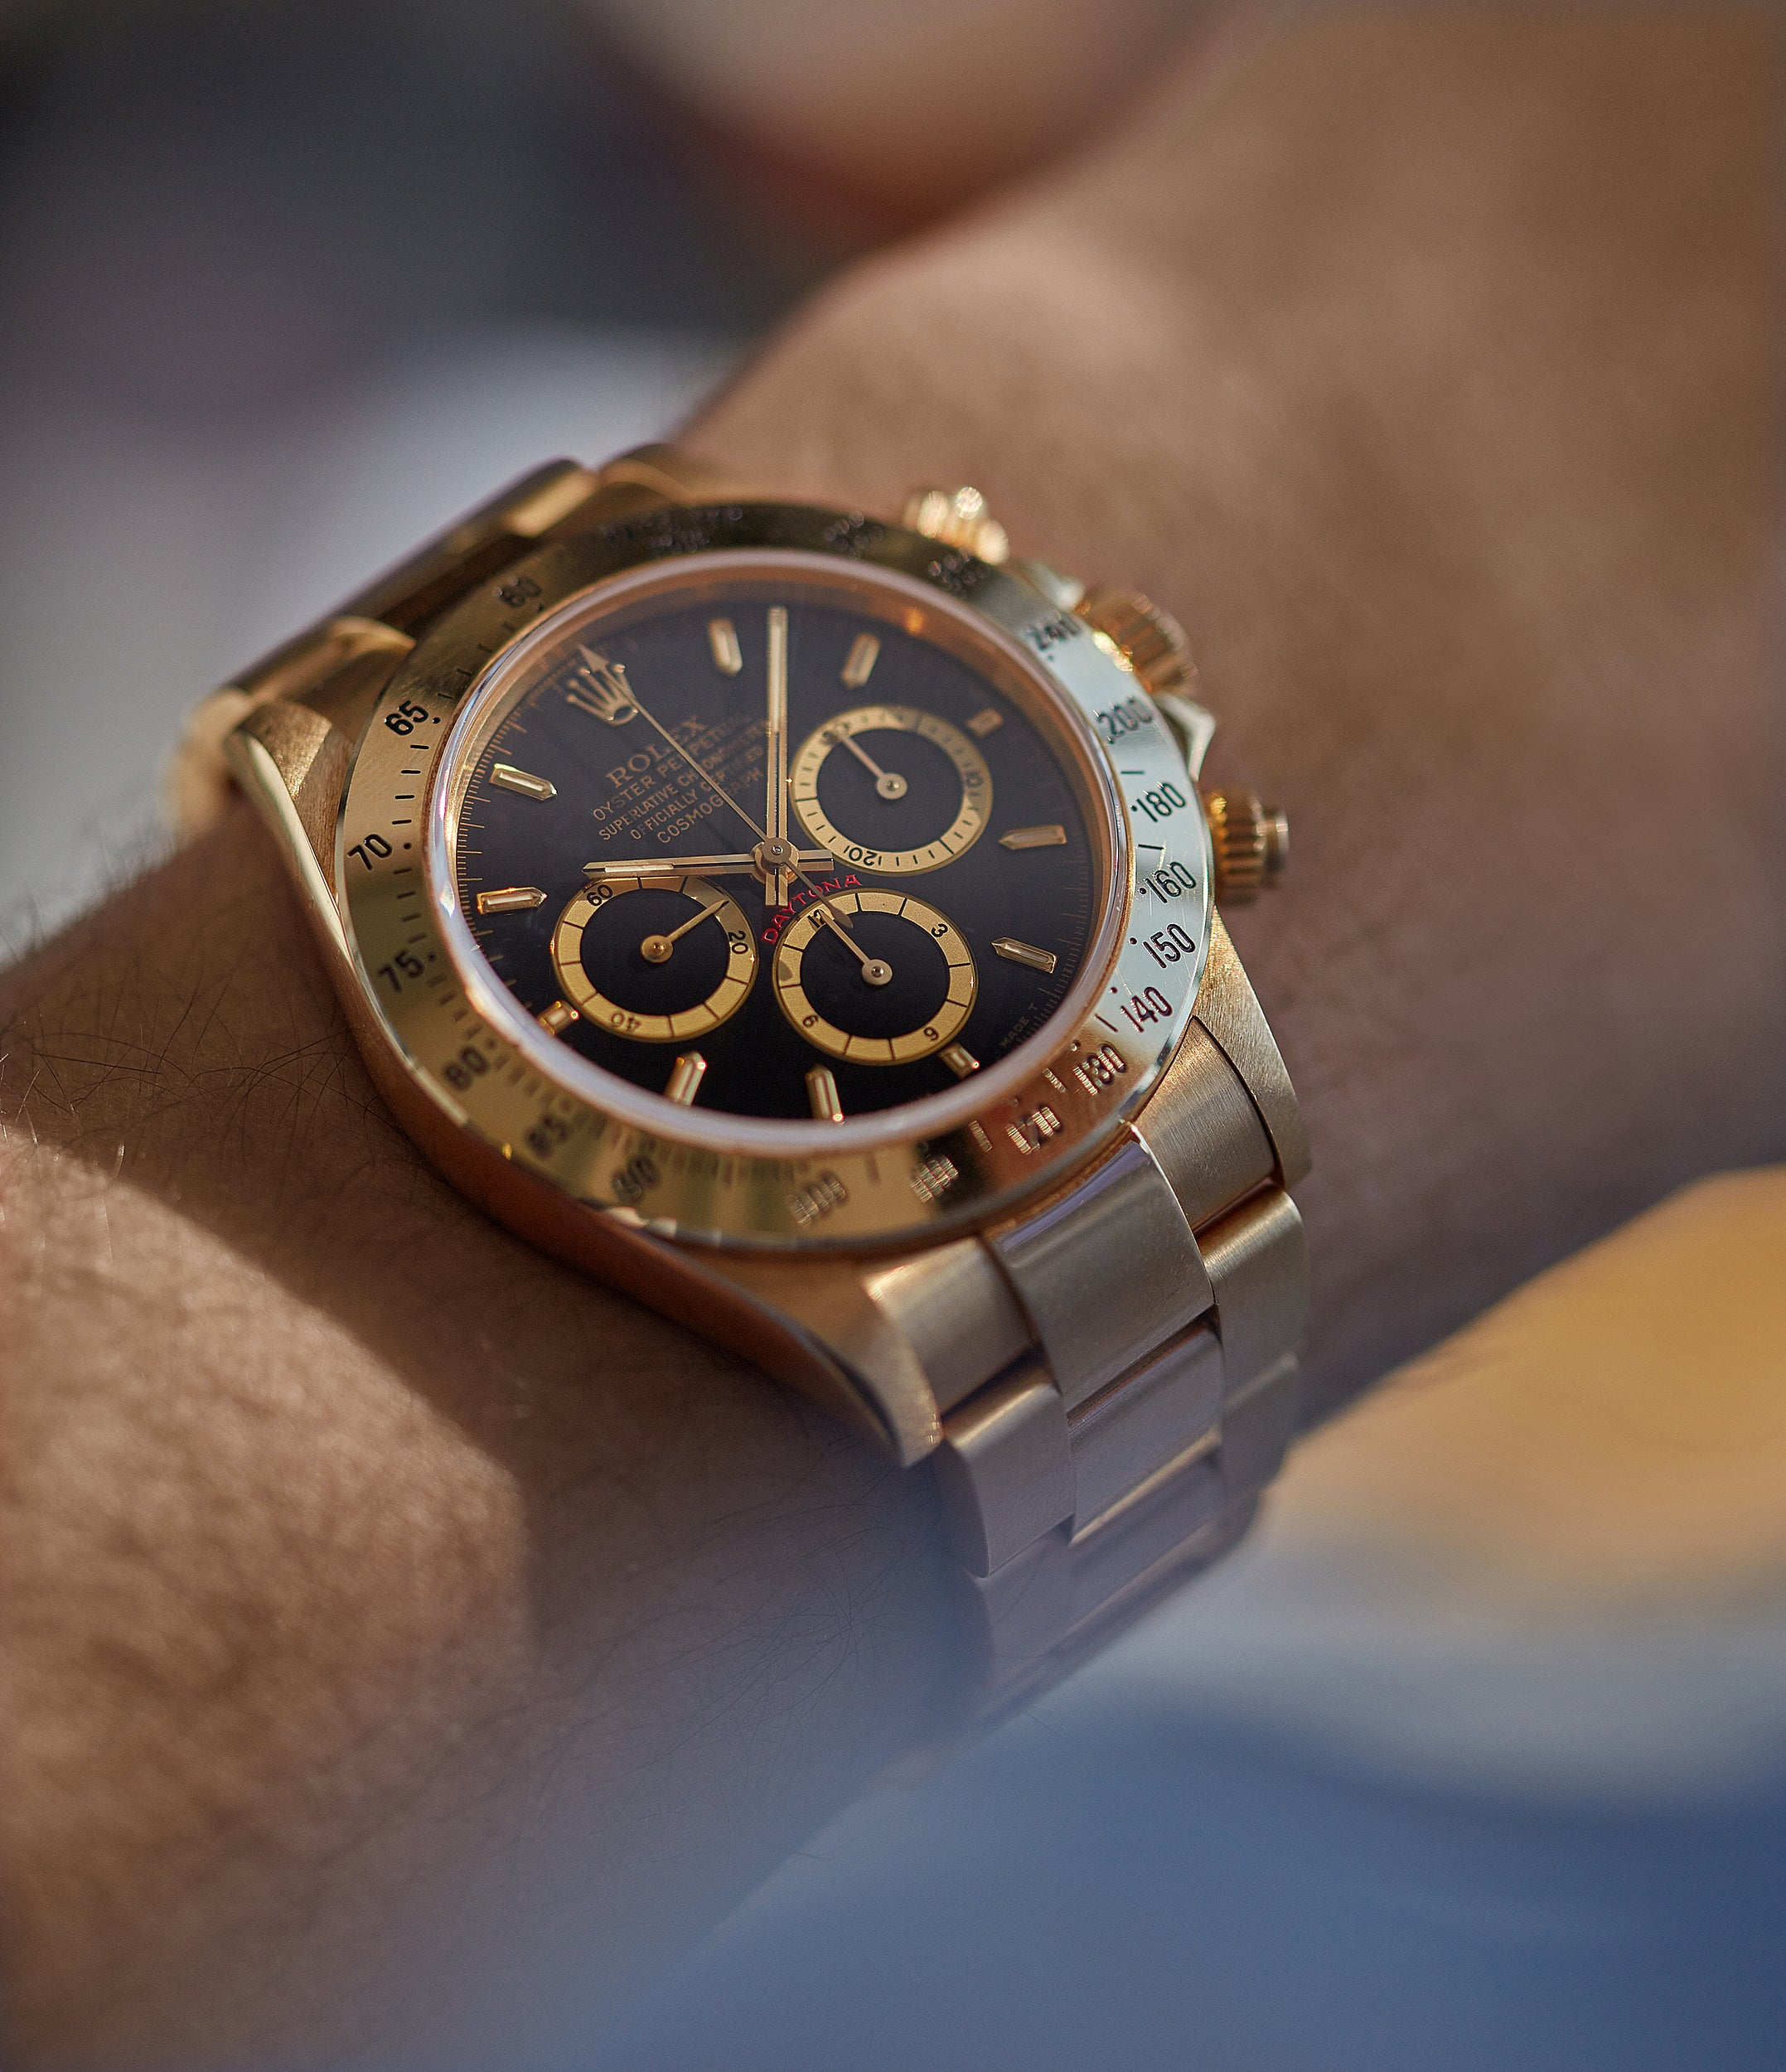 full set Rolex Daytona Automatique 16528 Zenith yellow gold black dial vintage watch for sale online at A Collected Man London UK specialist of rare watches